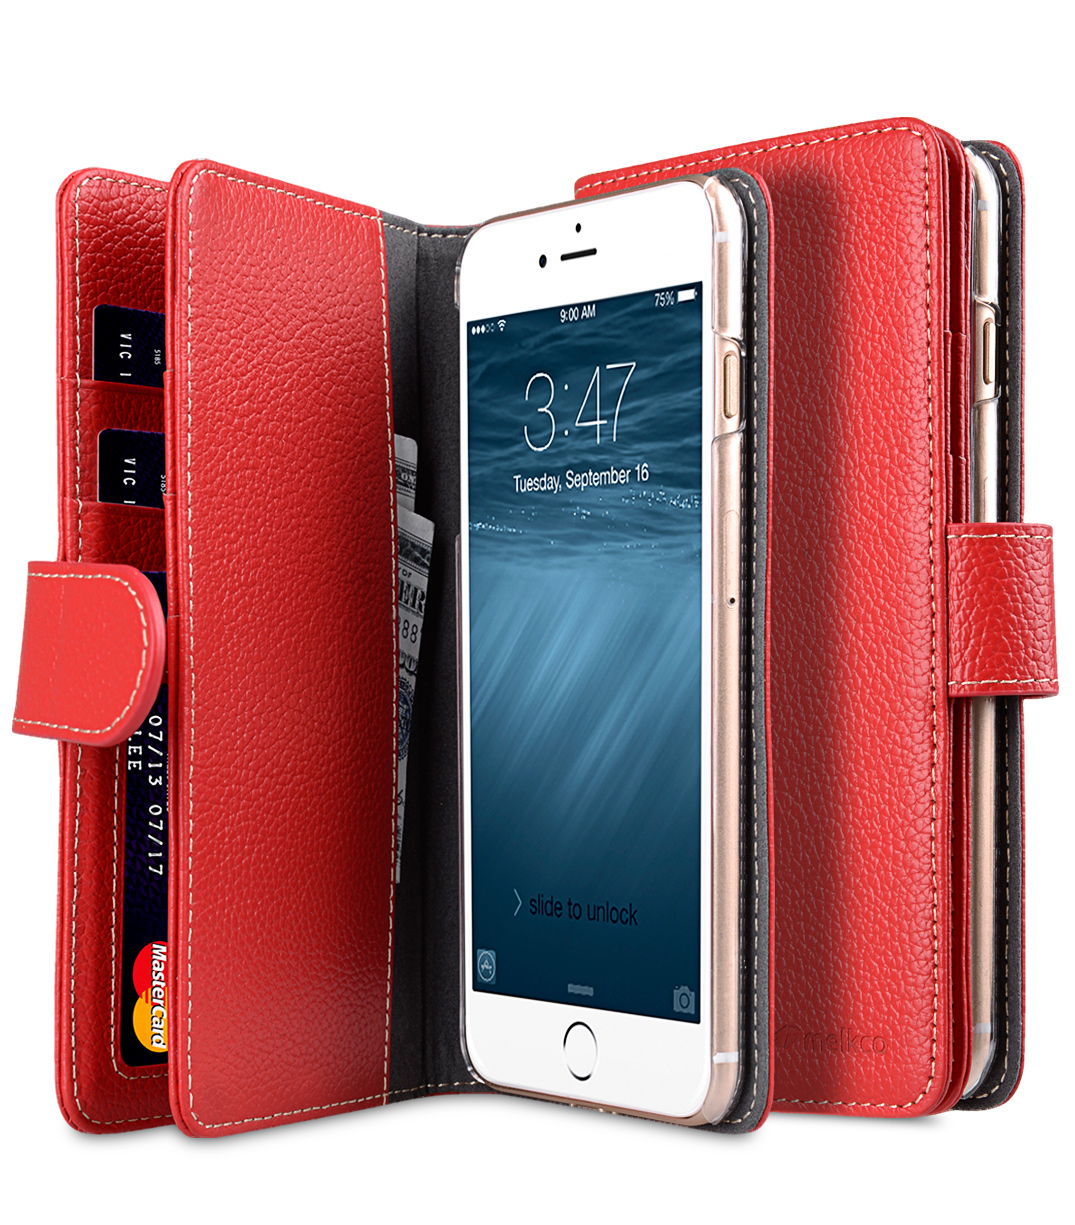 "Melkco Premium Leather Case for Apple iPhone 7 / 8 Plus(5.5"") - Wallet Plus Book Type (Red LC)"